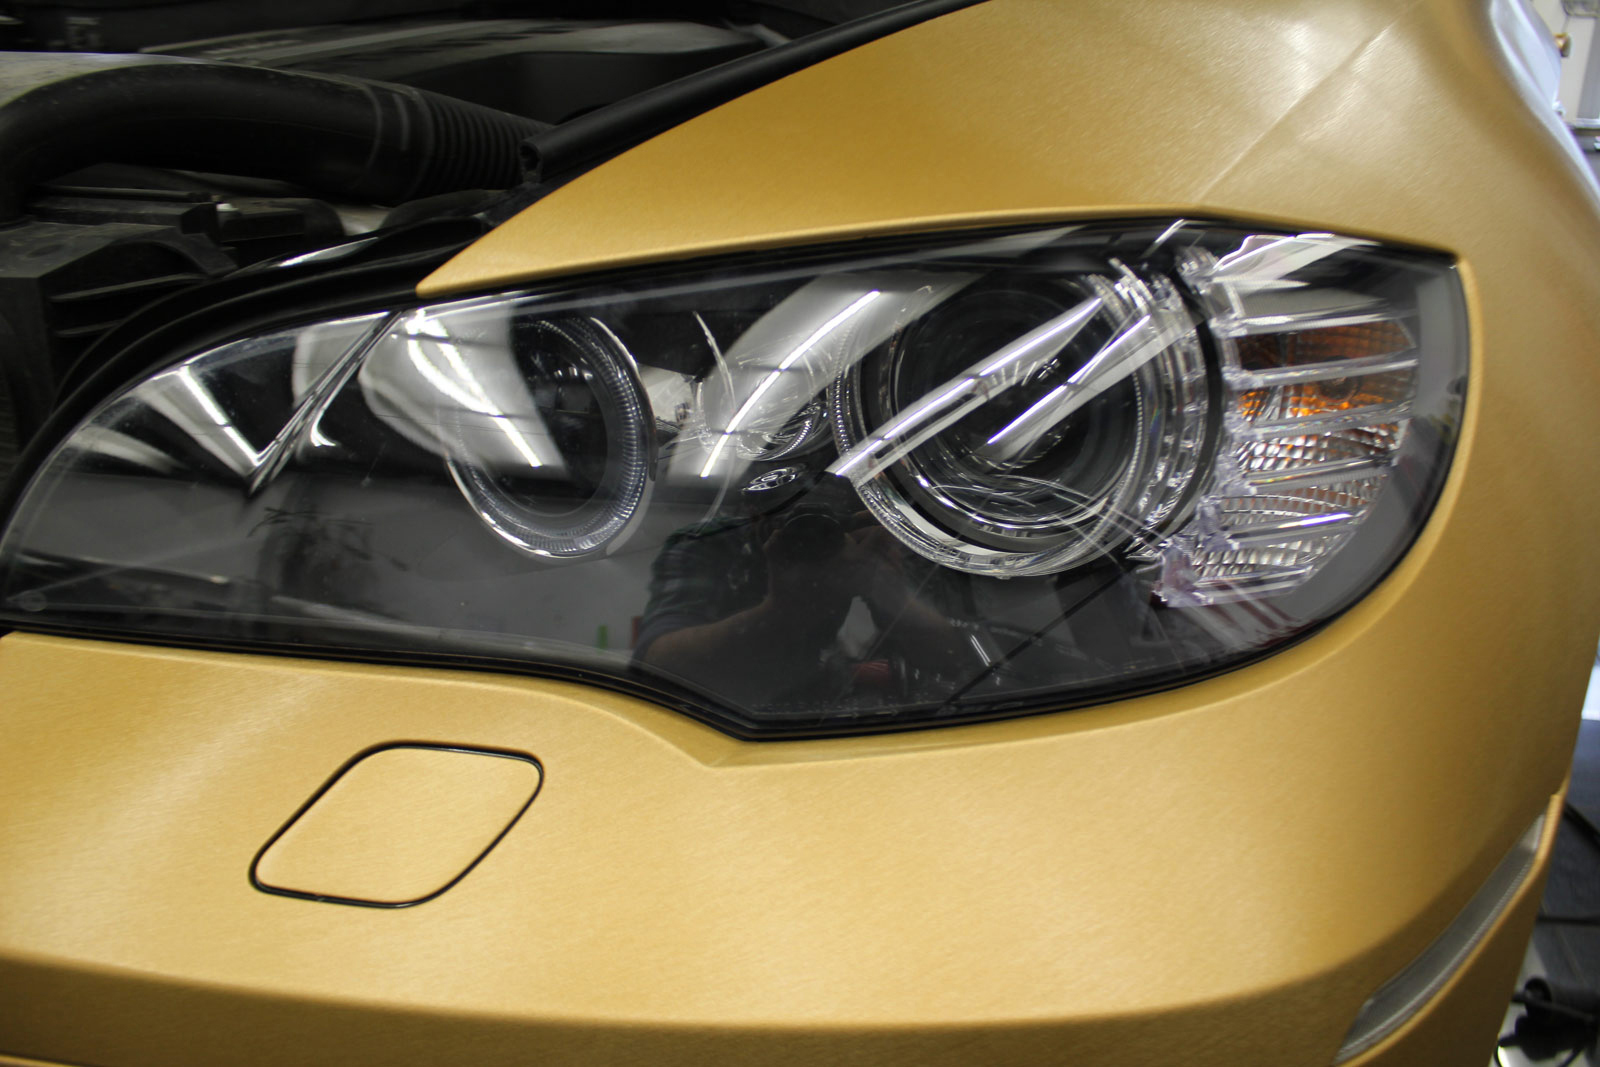 BMW_X6_VERKLEBUNG_BRUSHED_GOLD_49